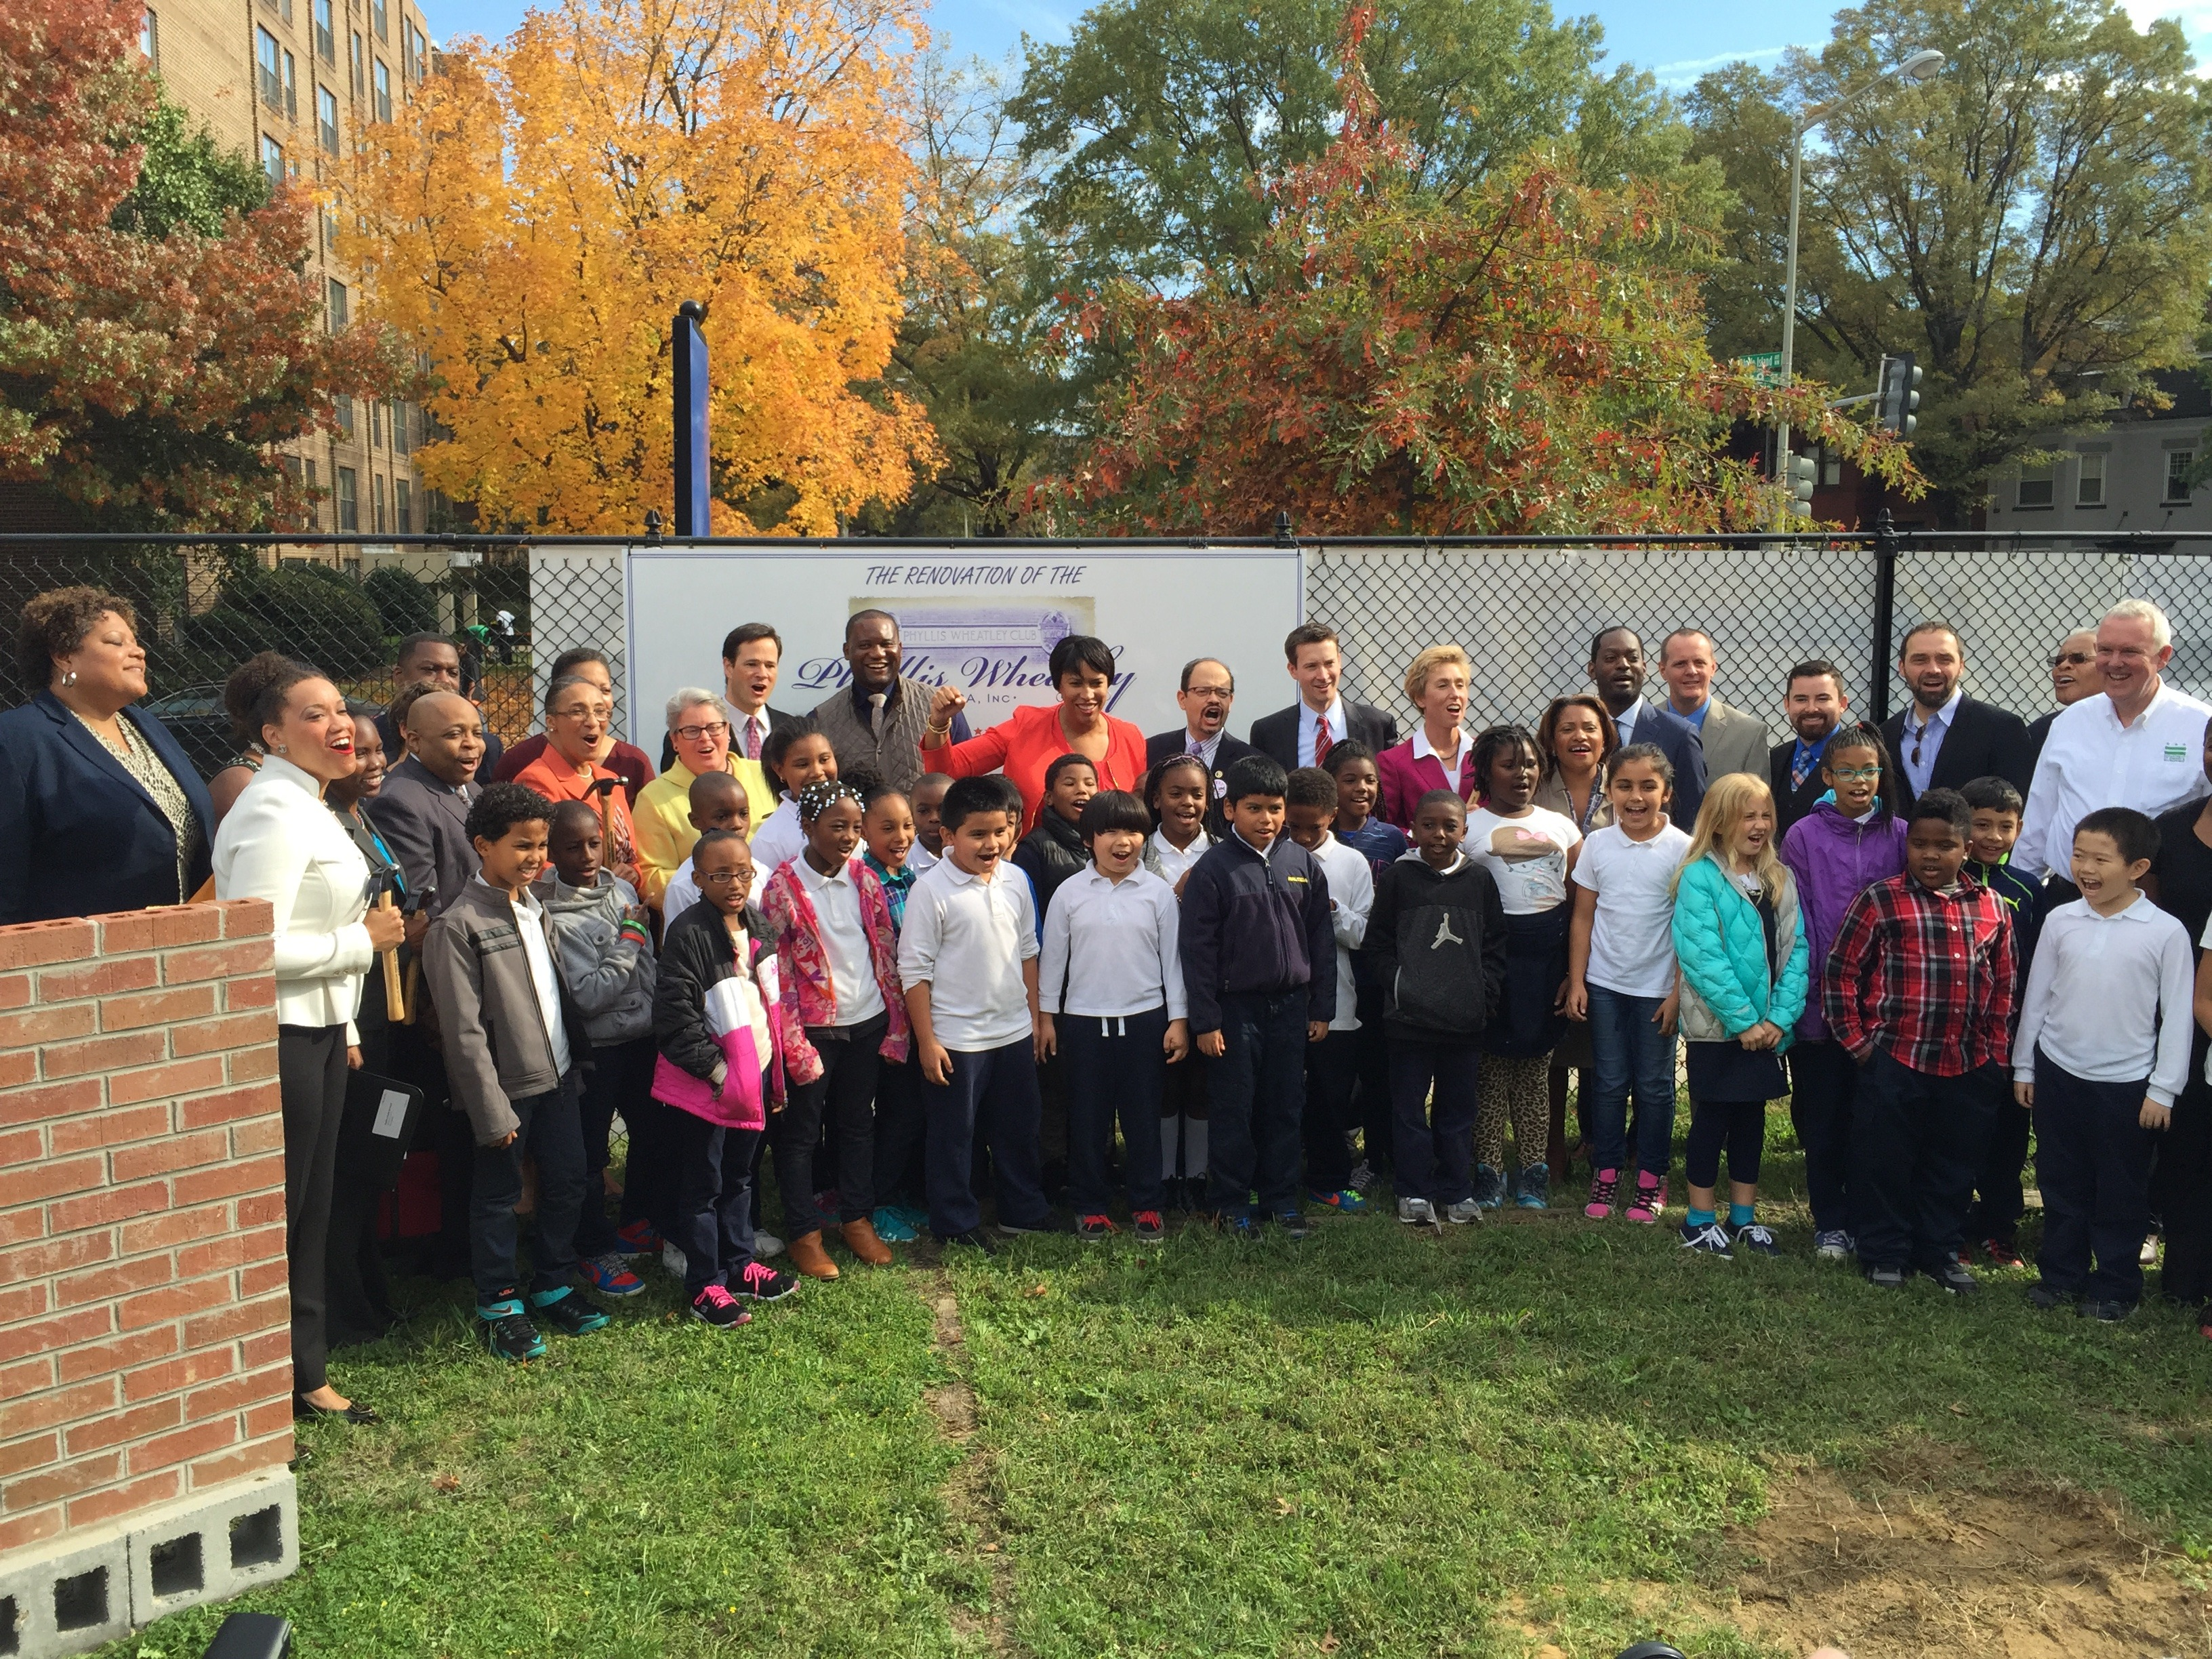 Mayor Muriel Bowser stands with a group of smiling adults and children